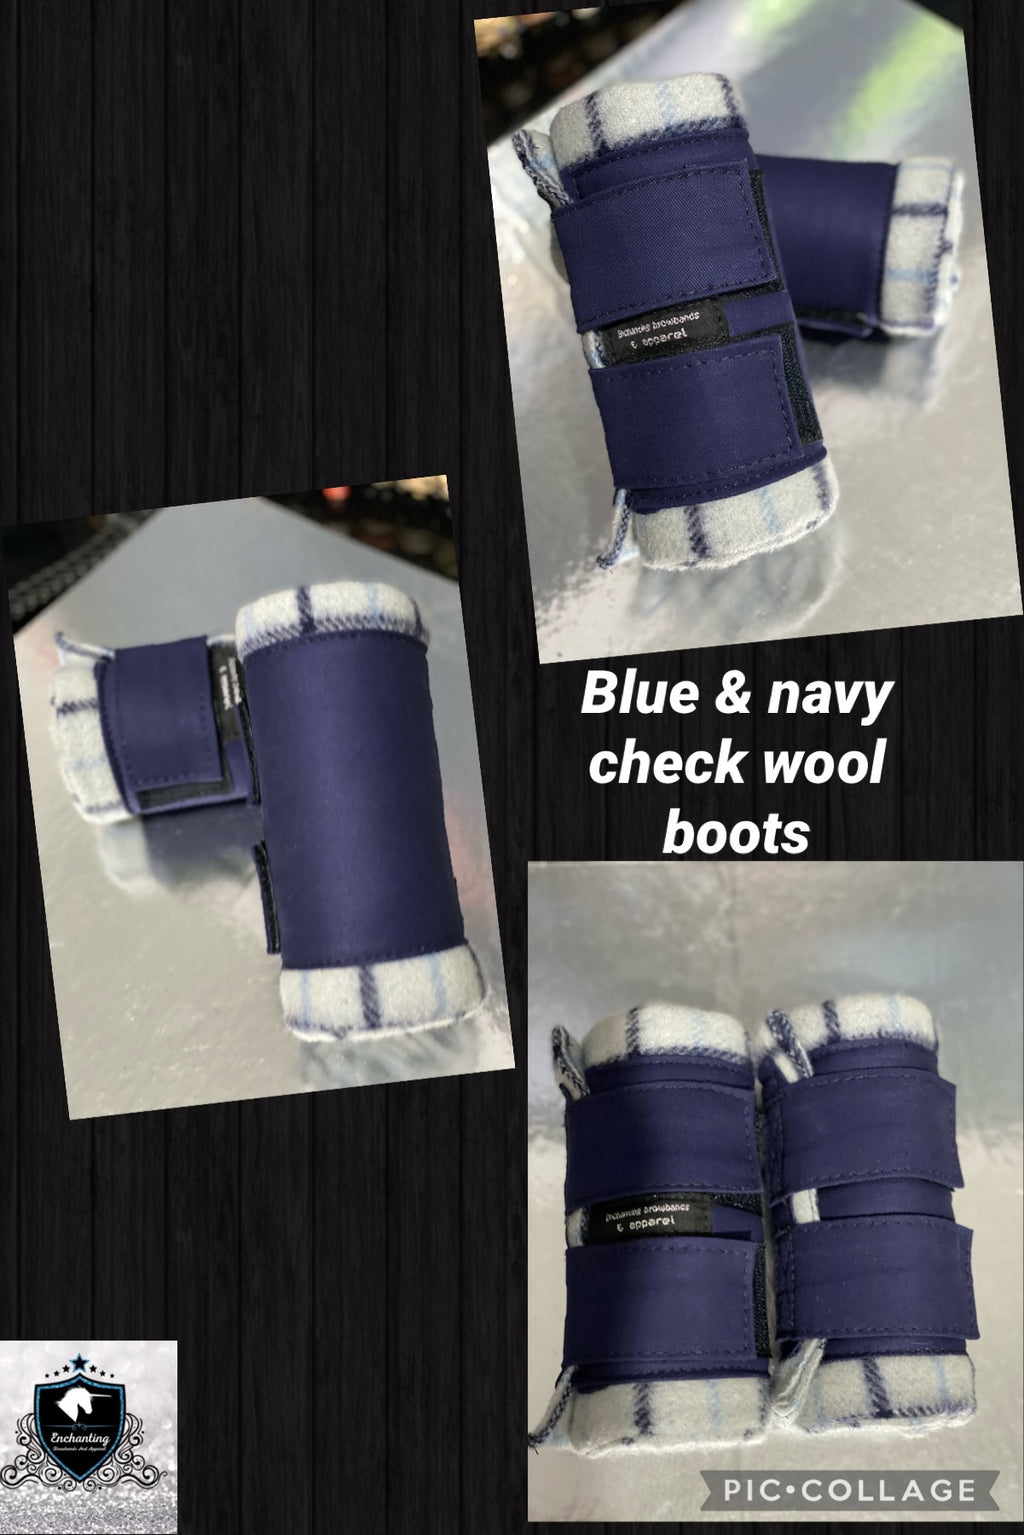 Blue check & navy boots set of 4